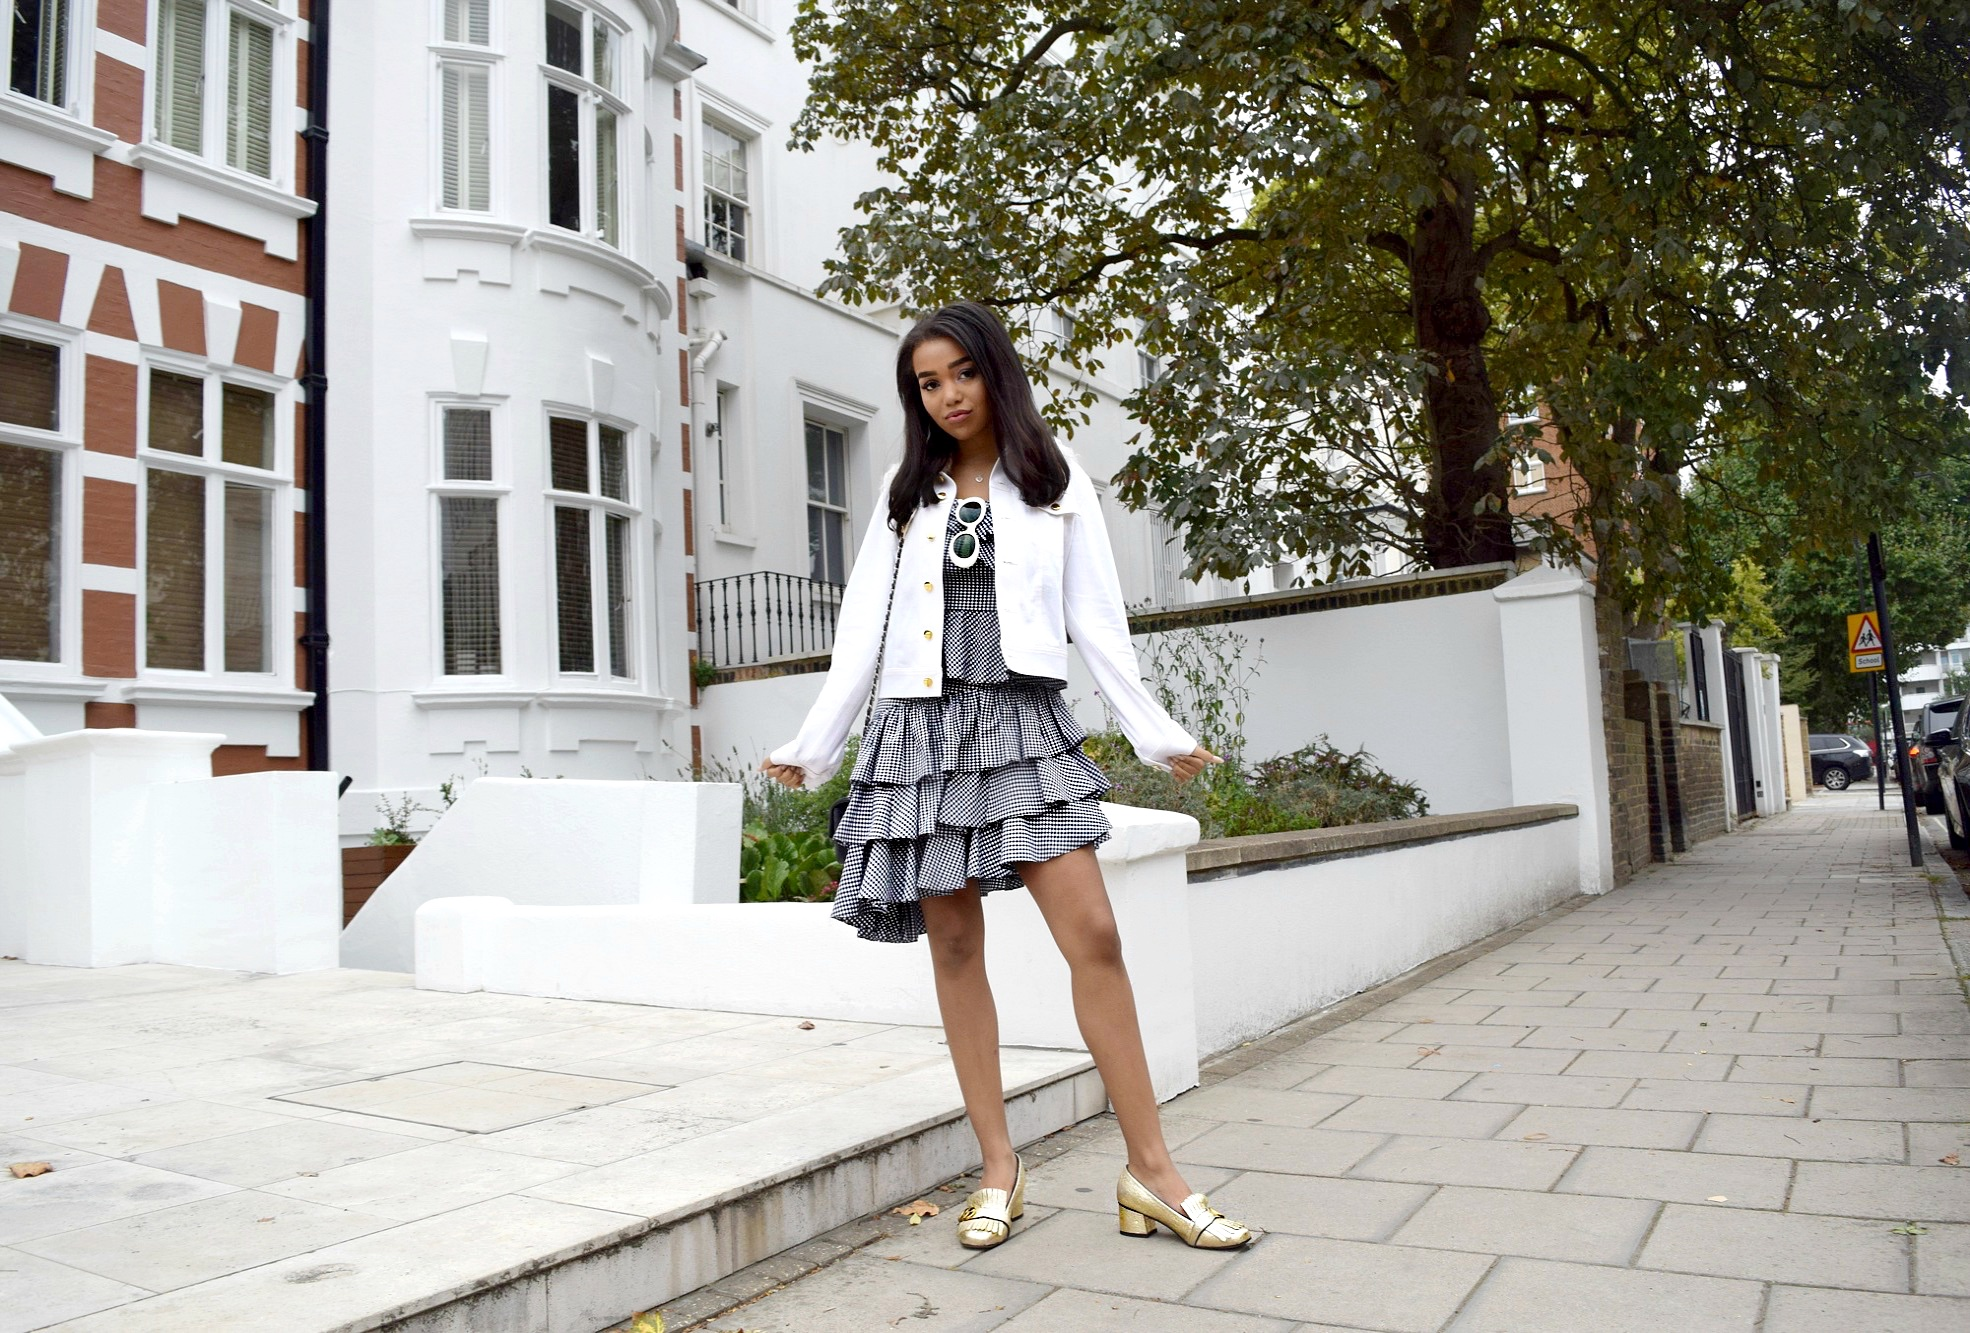 Abbey Road, London Town // Intermix Gingham Set // Derek Lam 10 Crosby Jacket // Gold Gucci Loafers // Chanel Flap Bag // Acne Mustang Sunglasses // London England Travel Diary LFW // Los Angeles Fashion Blogger Daphne Blunt: To Style, With Love